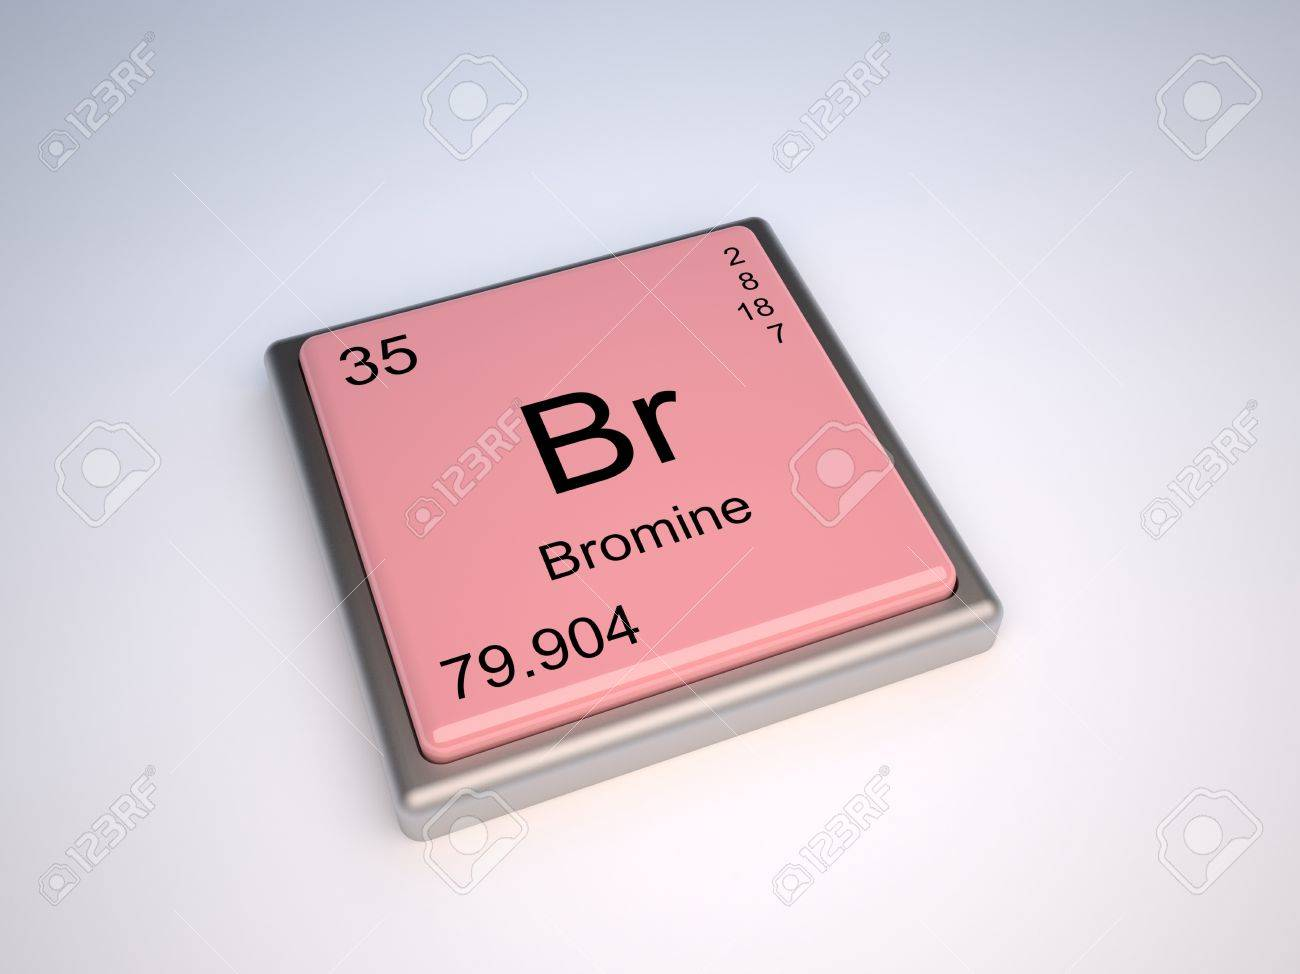 Bromine chemical element of the periodic table with symbol br stock bromine chemical element of the periodic table with symbol br stock photo 9257137 urtaz Images